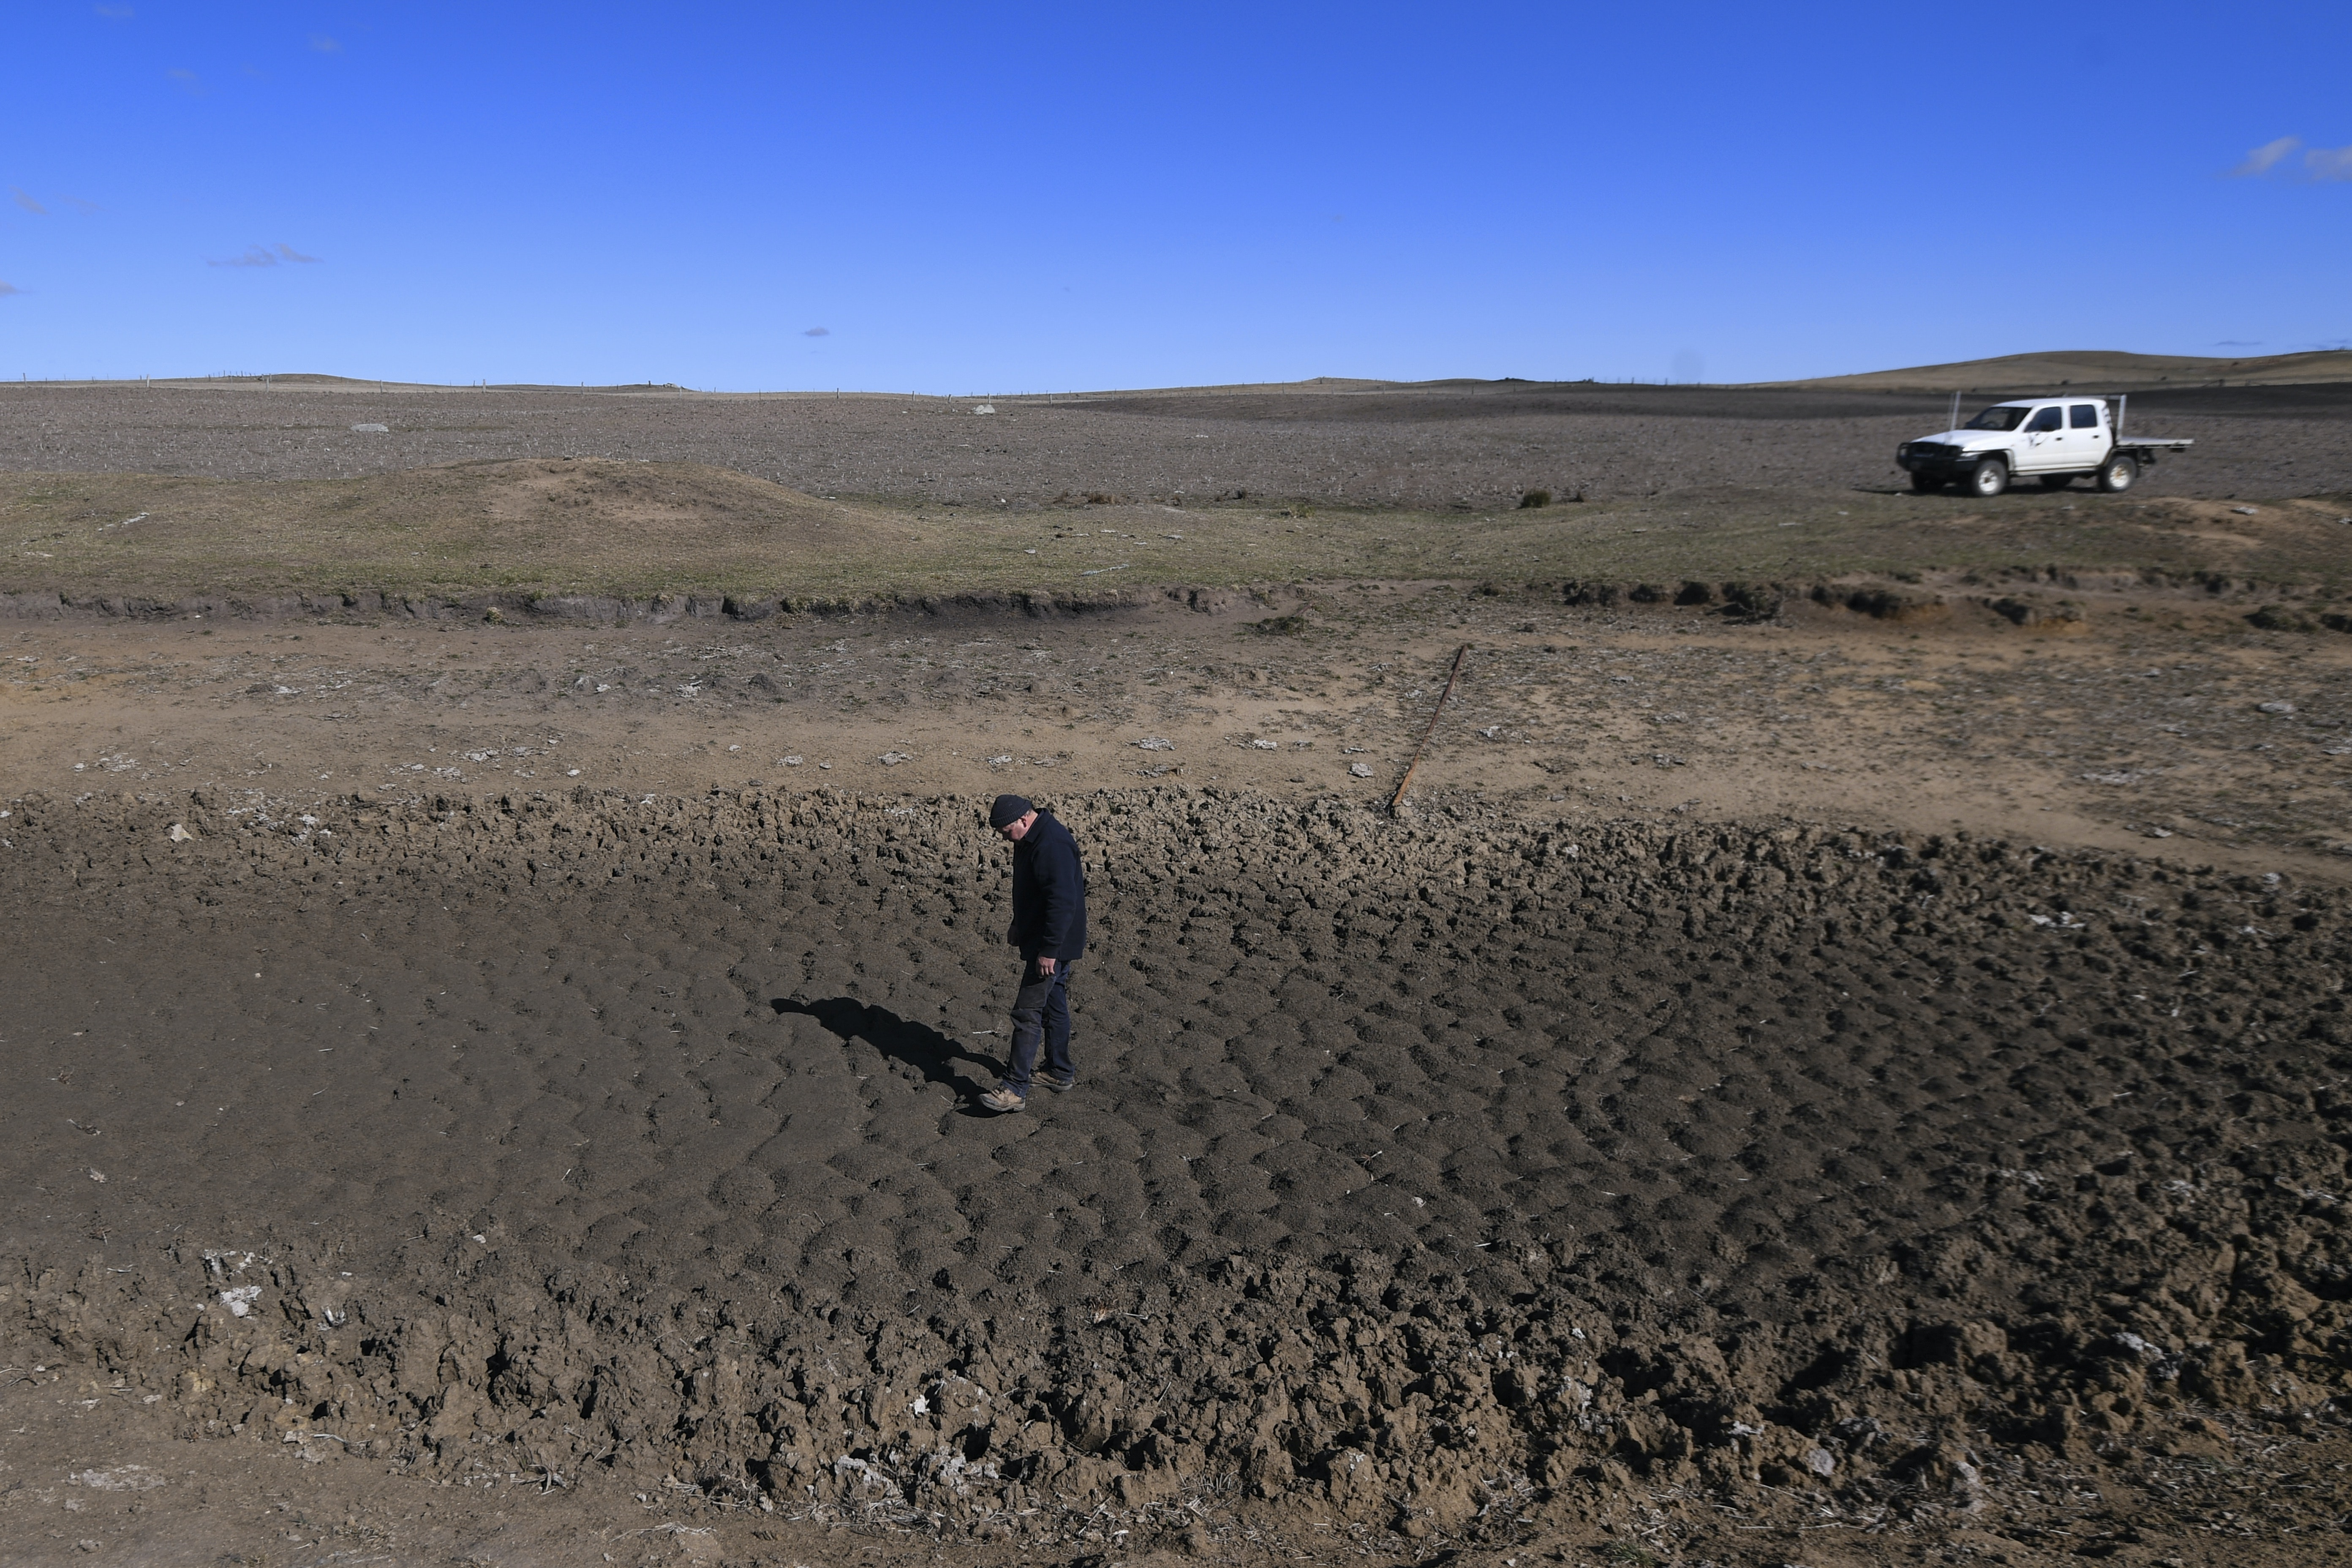 Farmer Ian Cargill stands in a middle of a dam on his property near Braidwood, NSW, in August 2018. At the time 100% of the state was drought-affected.